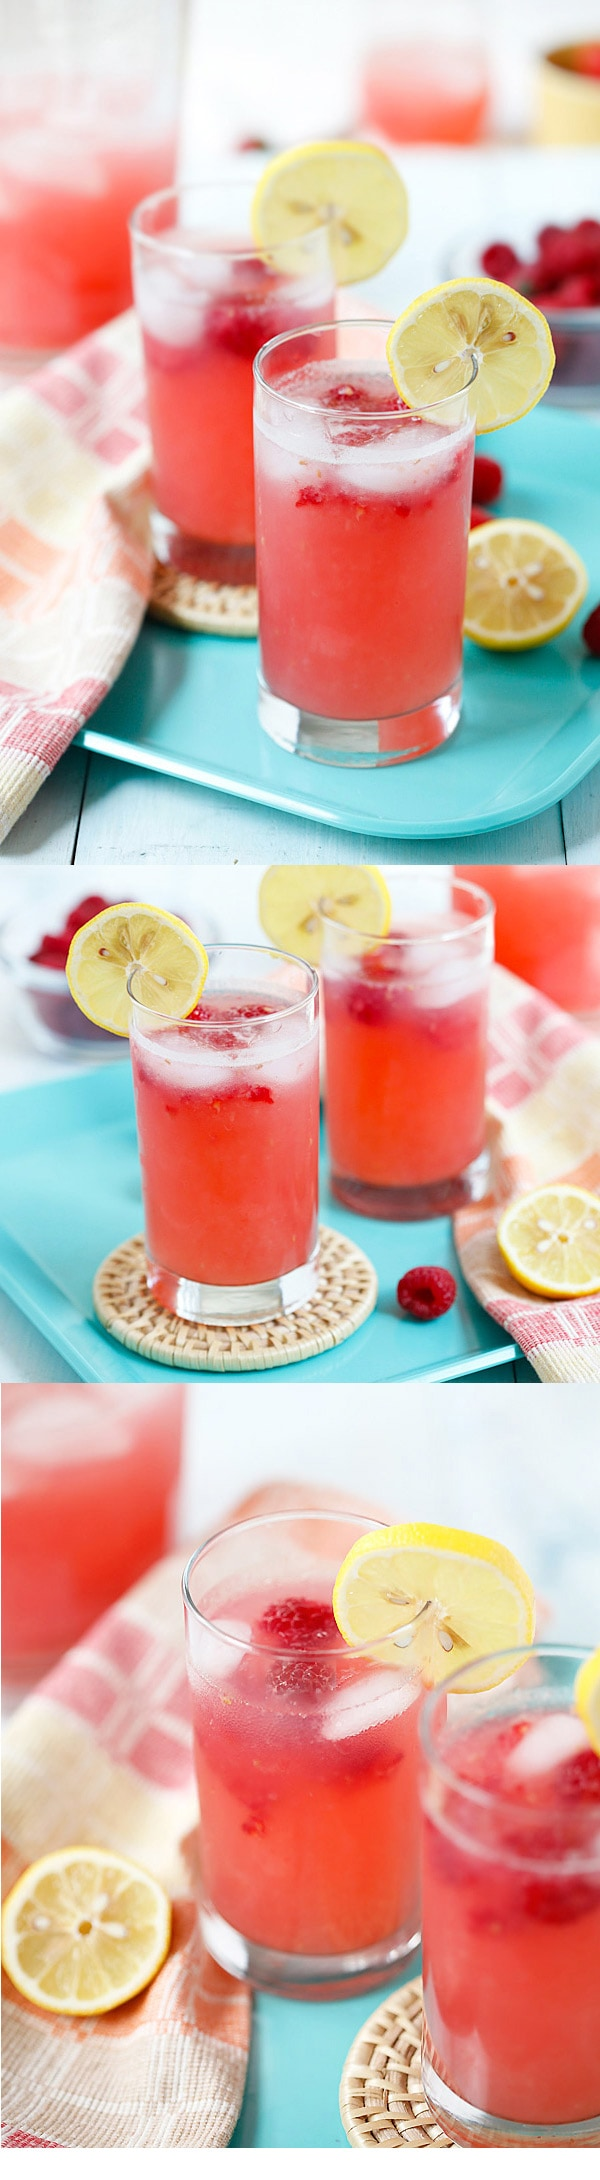 Raspberry Lemonade - sweet, refreshing and thirst-quenching lemonade with raspberry. So easy to make and takes only 10 minutes to make!   rasamalaysia.com